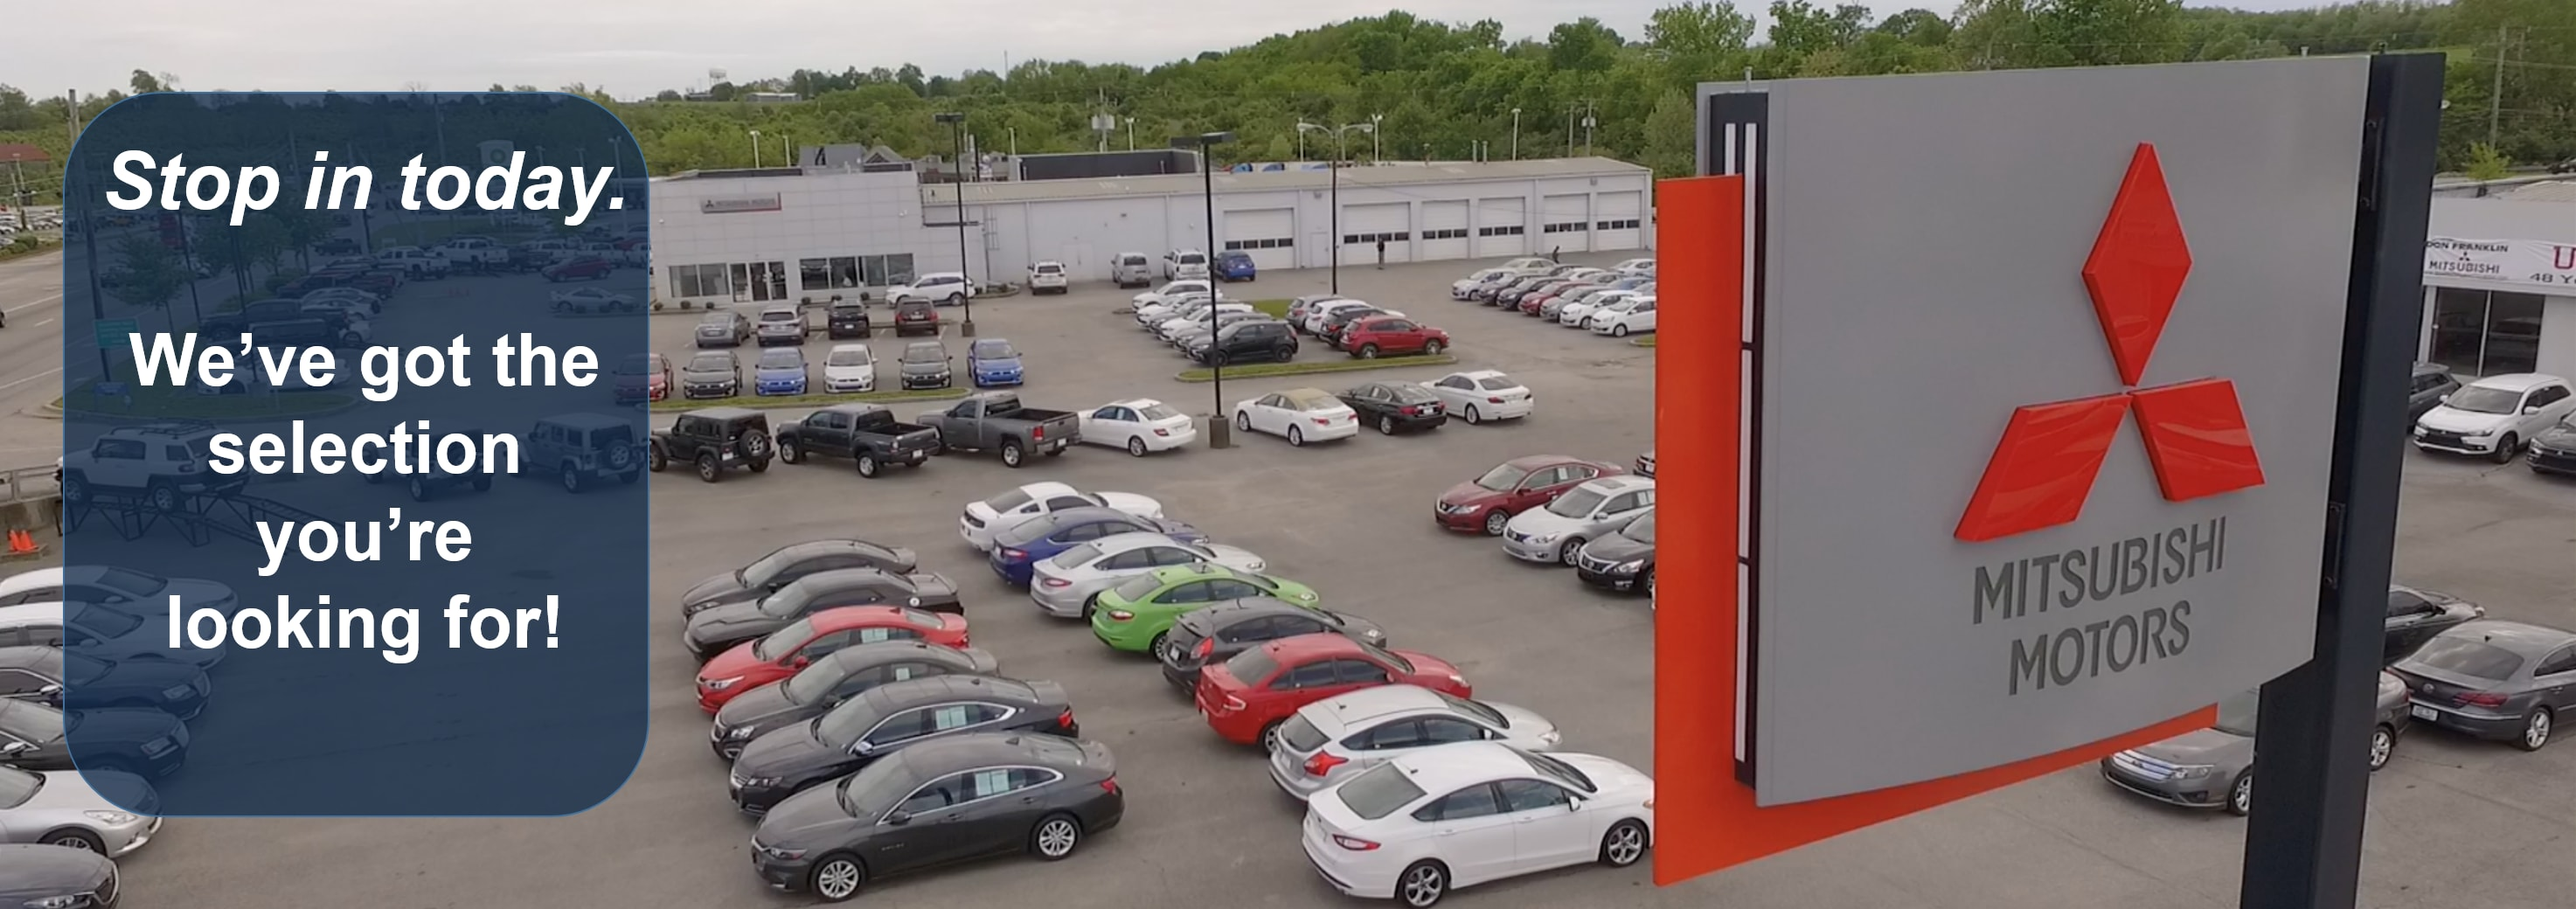 Mitsubishi Dealership Lexington Kentucky Mitsubishi Dealer - Mitsubishi motors address